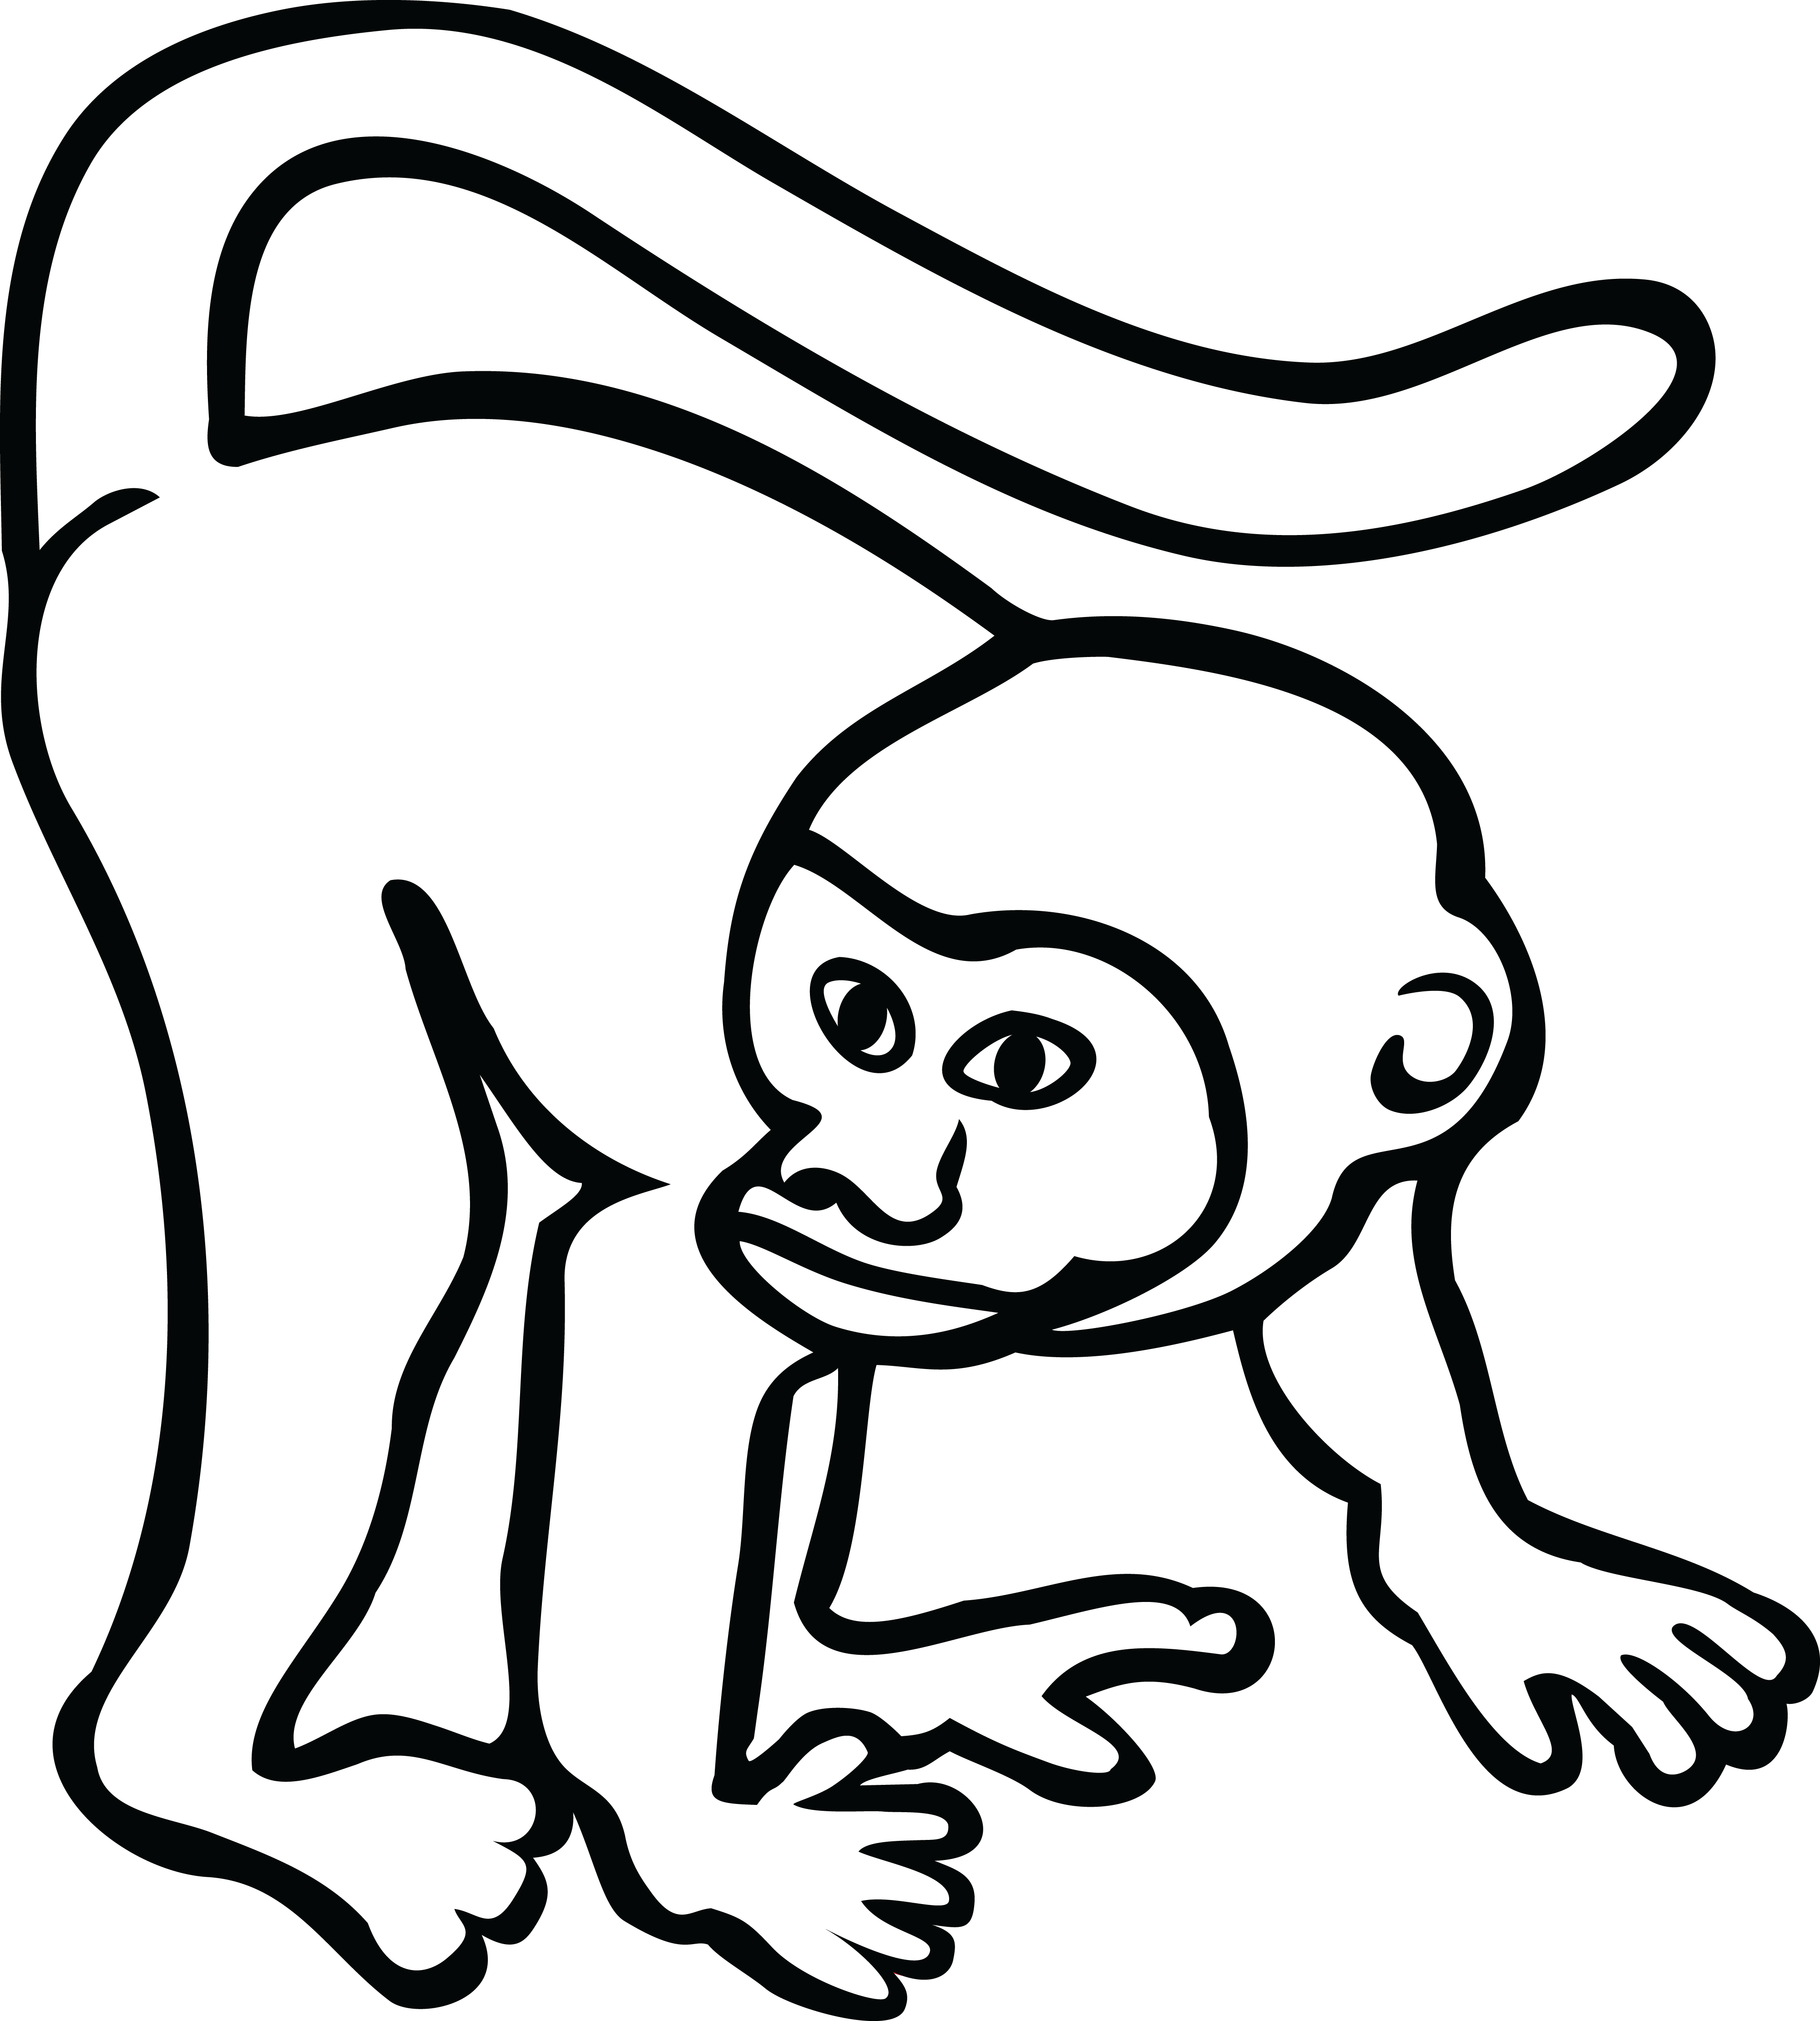 Download Hd Free Clipart Of A Monkey さる かっこいい フリー イラスト Transparent Png Image Nicepng Com